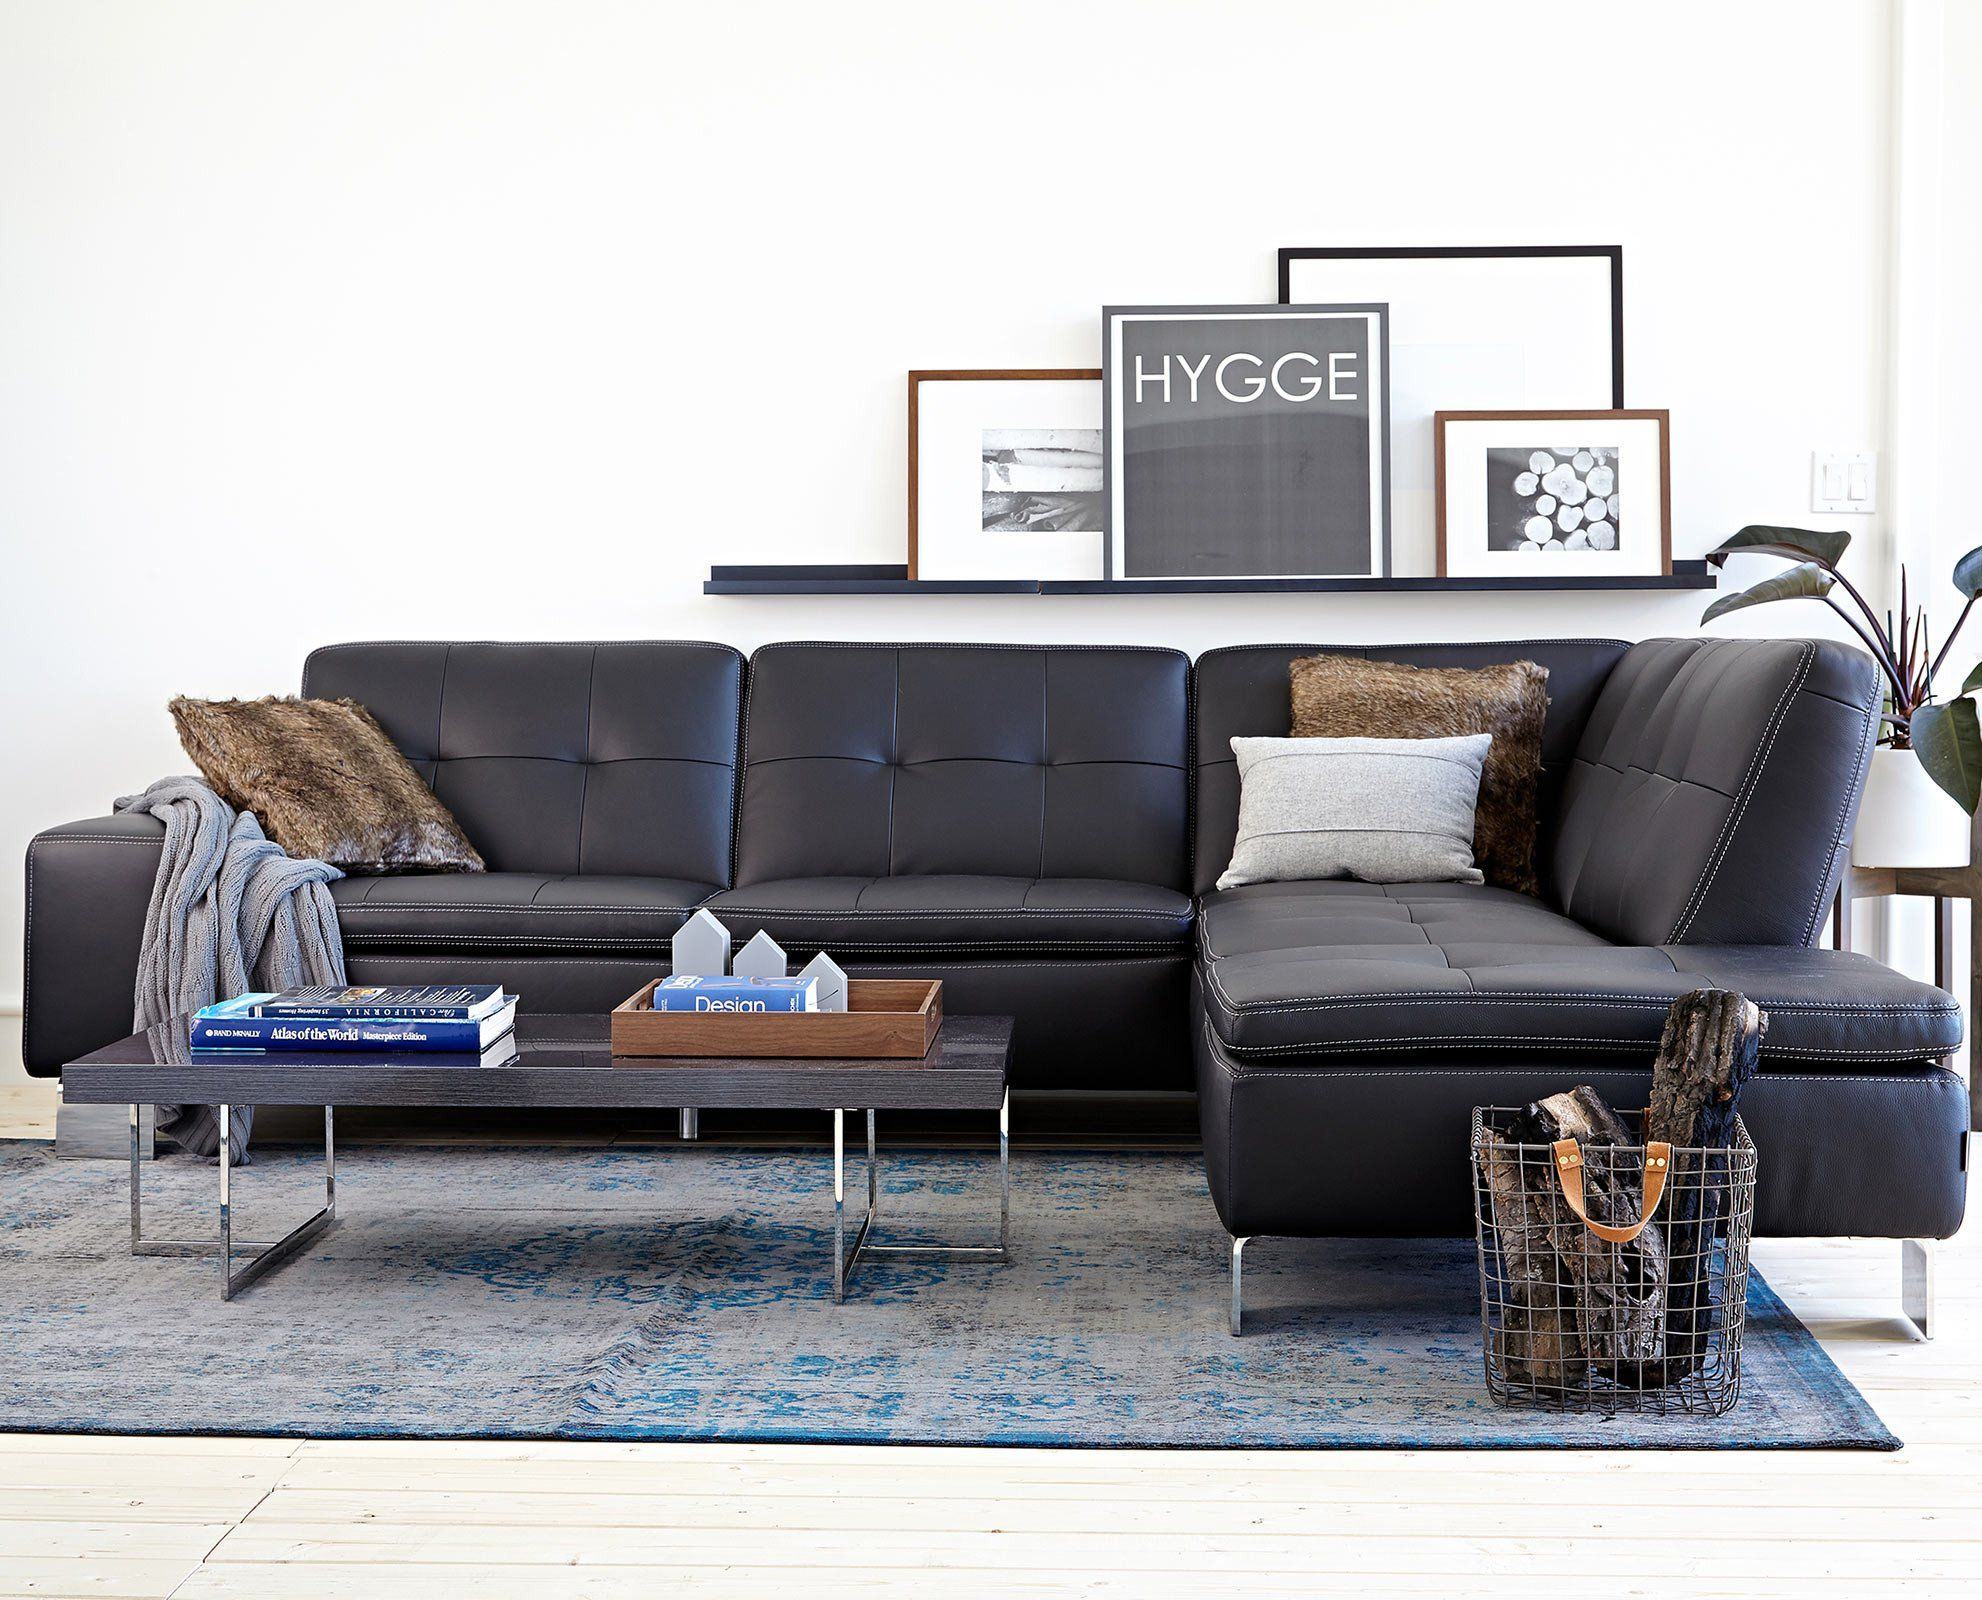 Large scale with room for up to ten people the francesca sectional will meet all of your seating needs the contemporary design with steel legs and tufted